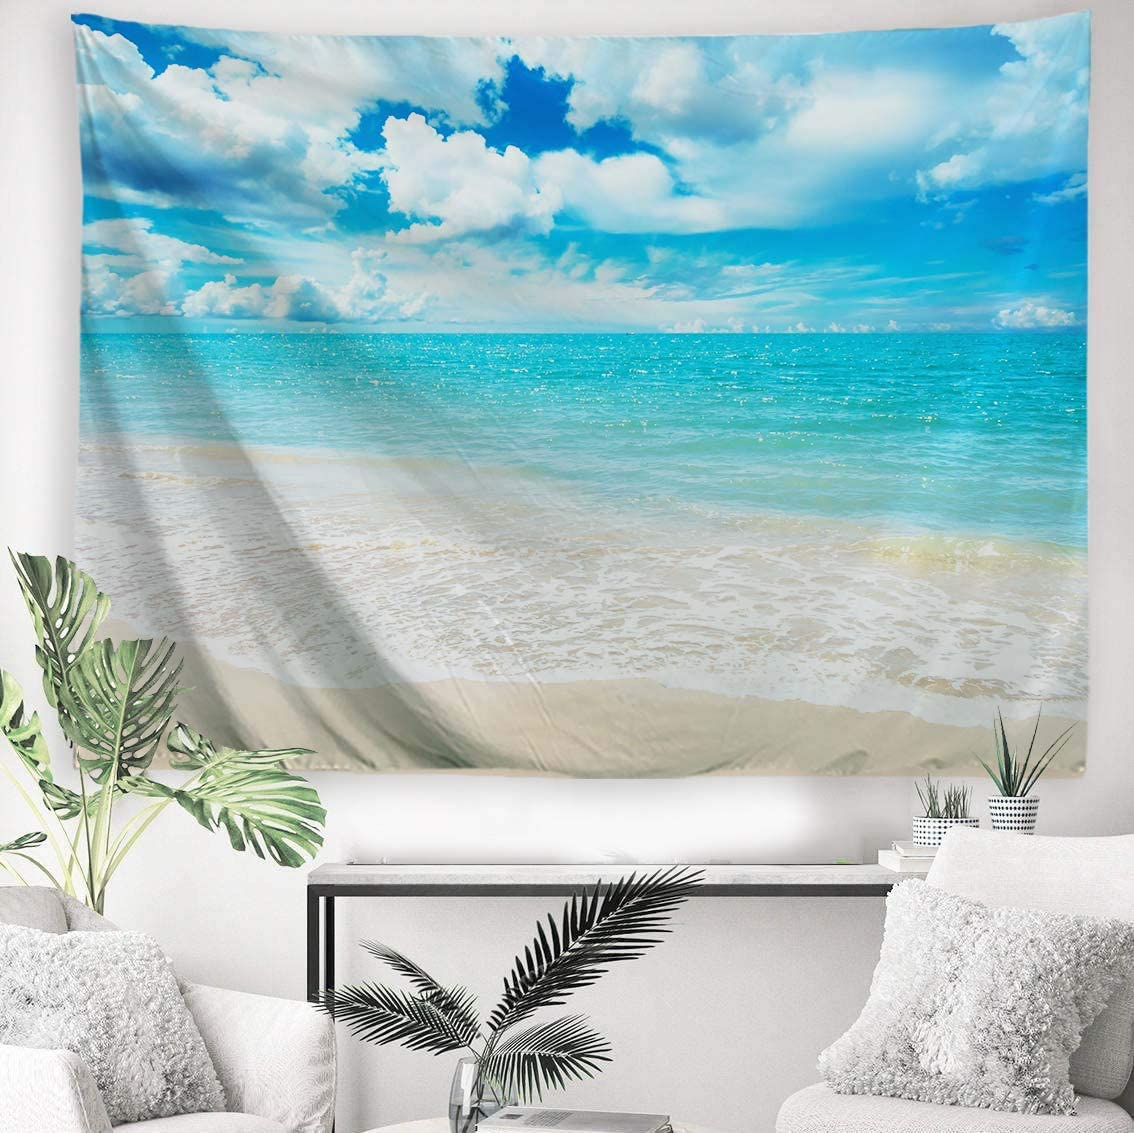 PROCIDA Home Tapestry Wall Hanging Nature Art Polyester Fabric Sea Beach Theme, Wall Decor For Dorm Room, Bedroom, Living Room, Nail Included – 90 W x 71 L 230cmx180cm – Light Blue Sea Water